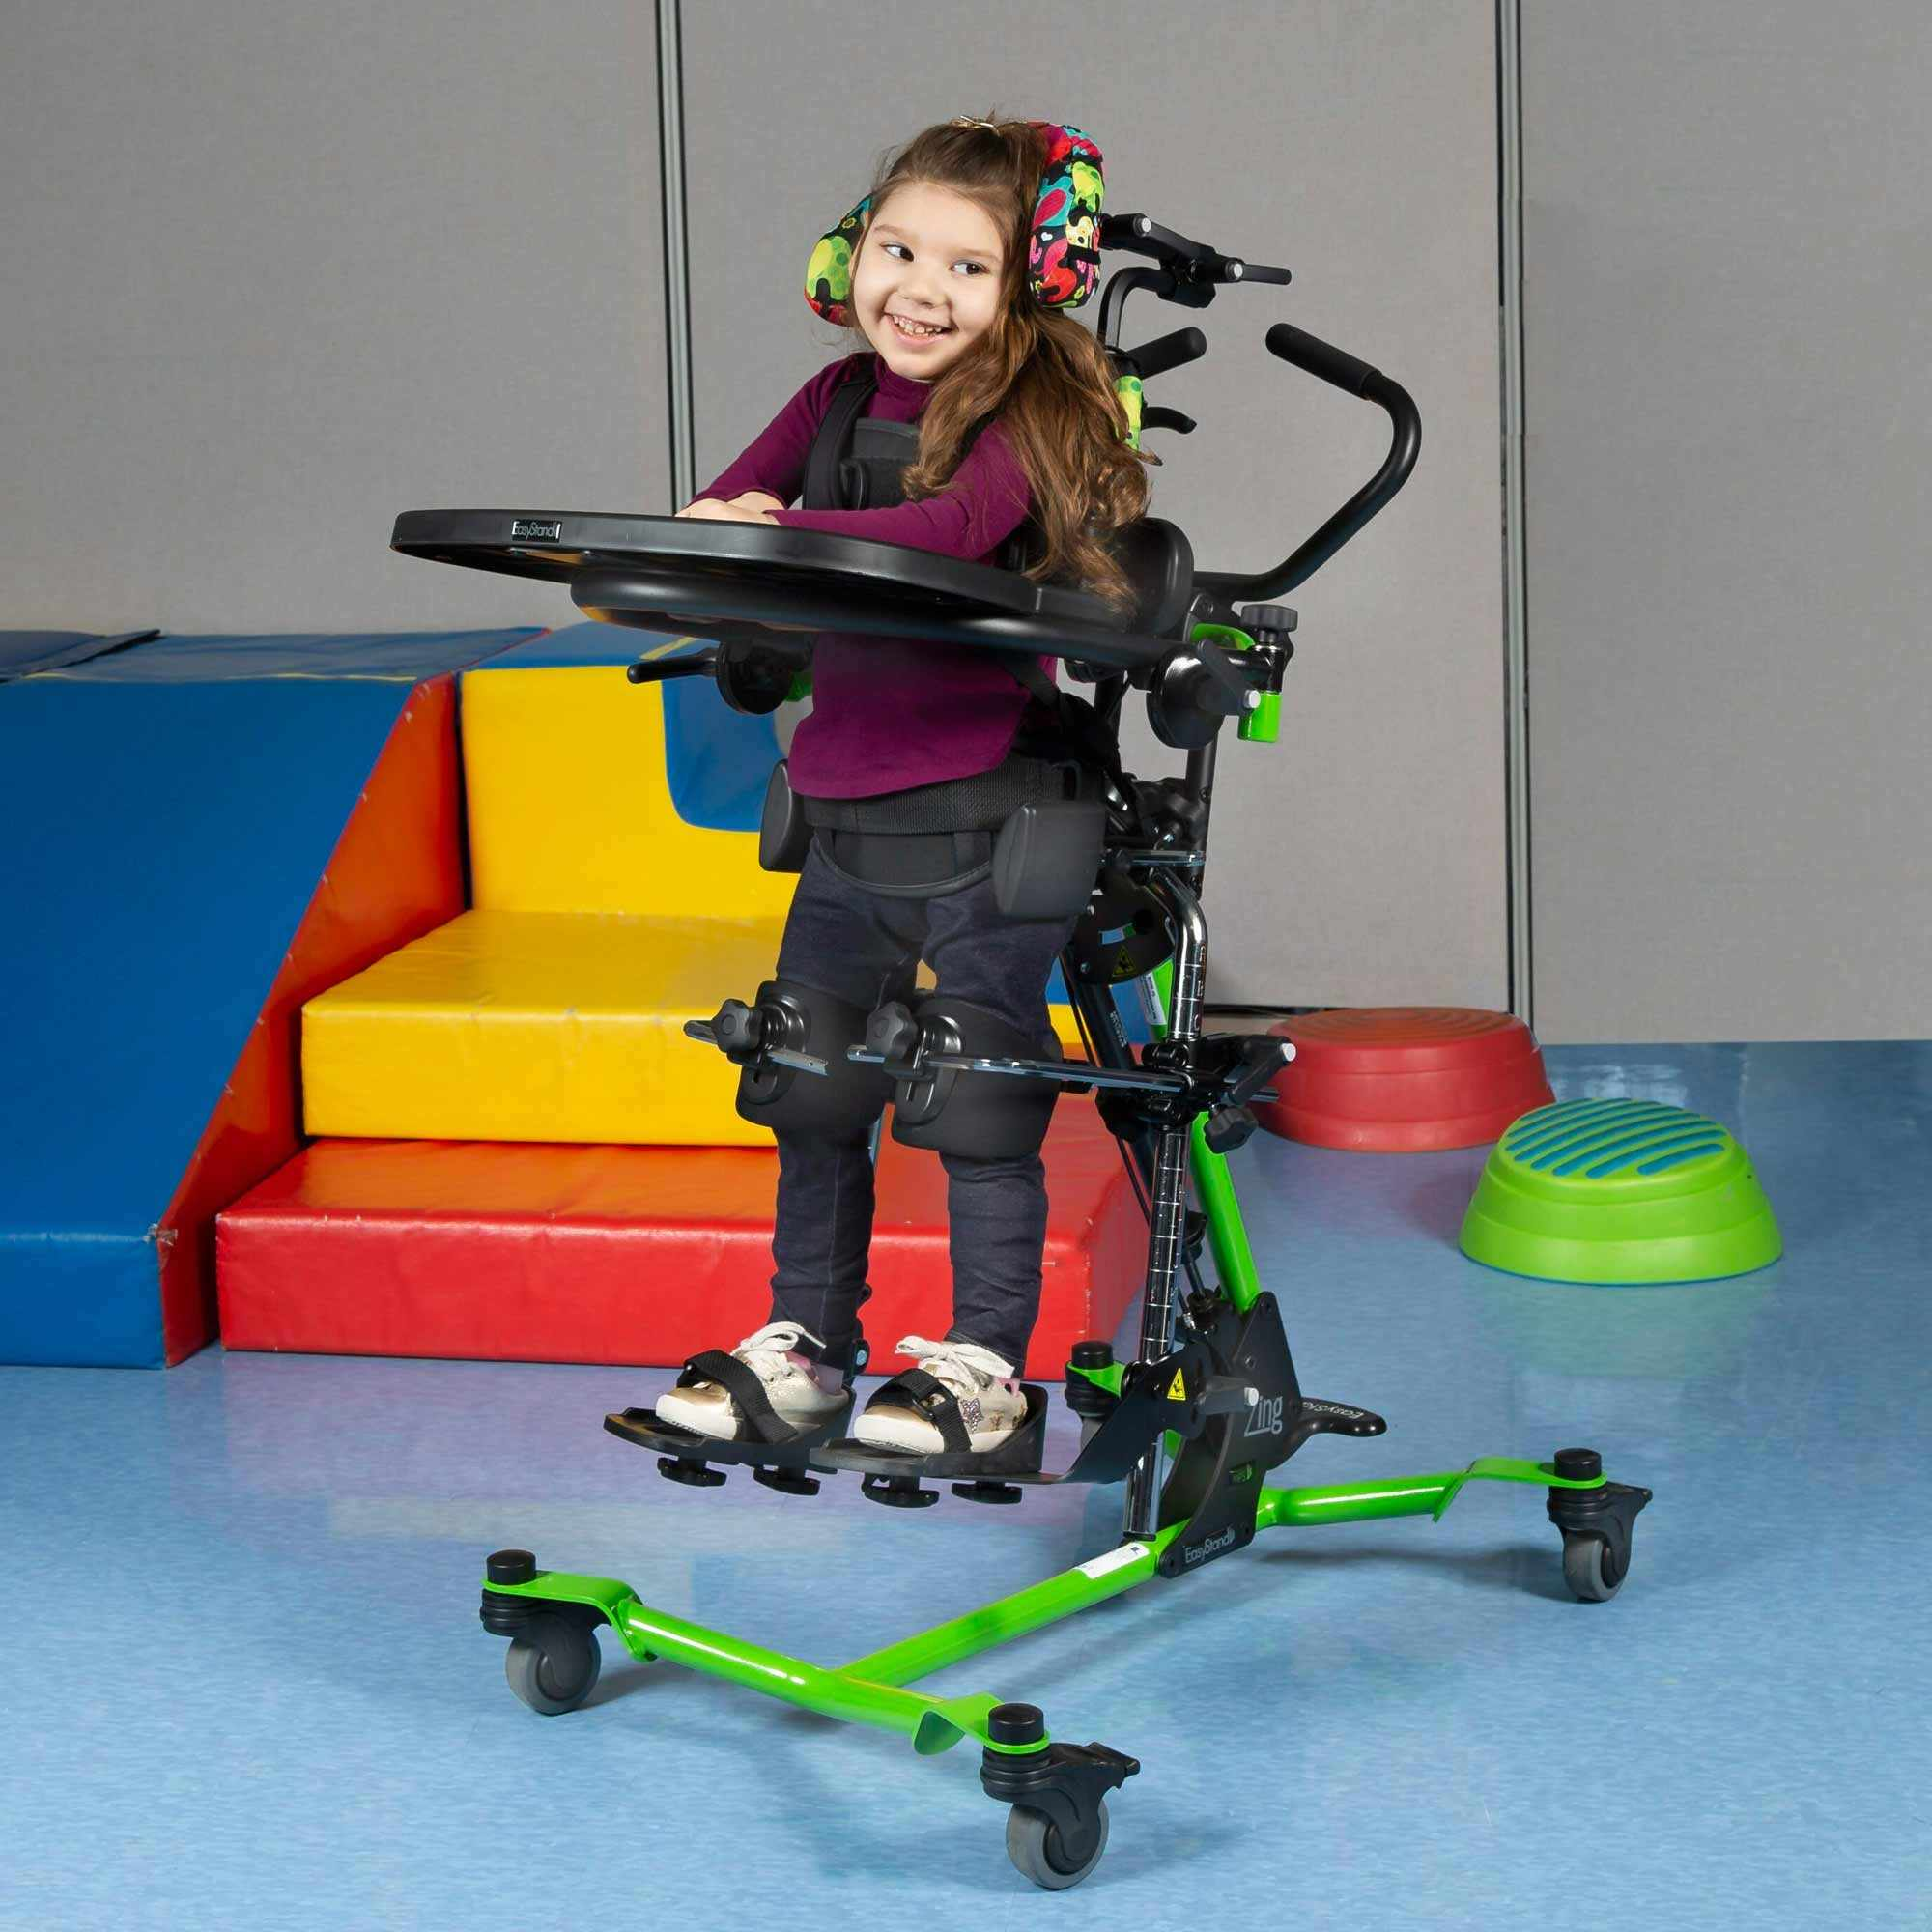 Easystand Zing Size 1 Multi-Position Stander | EasyStand Zing - Medicaleshop